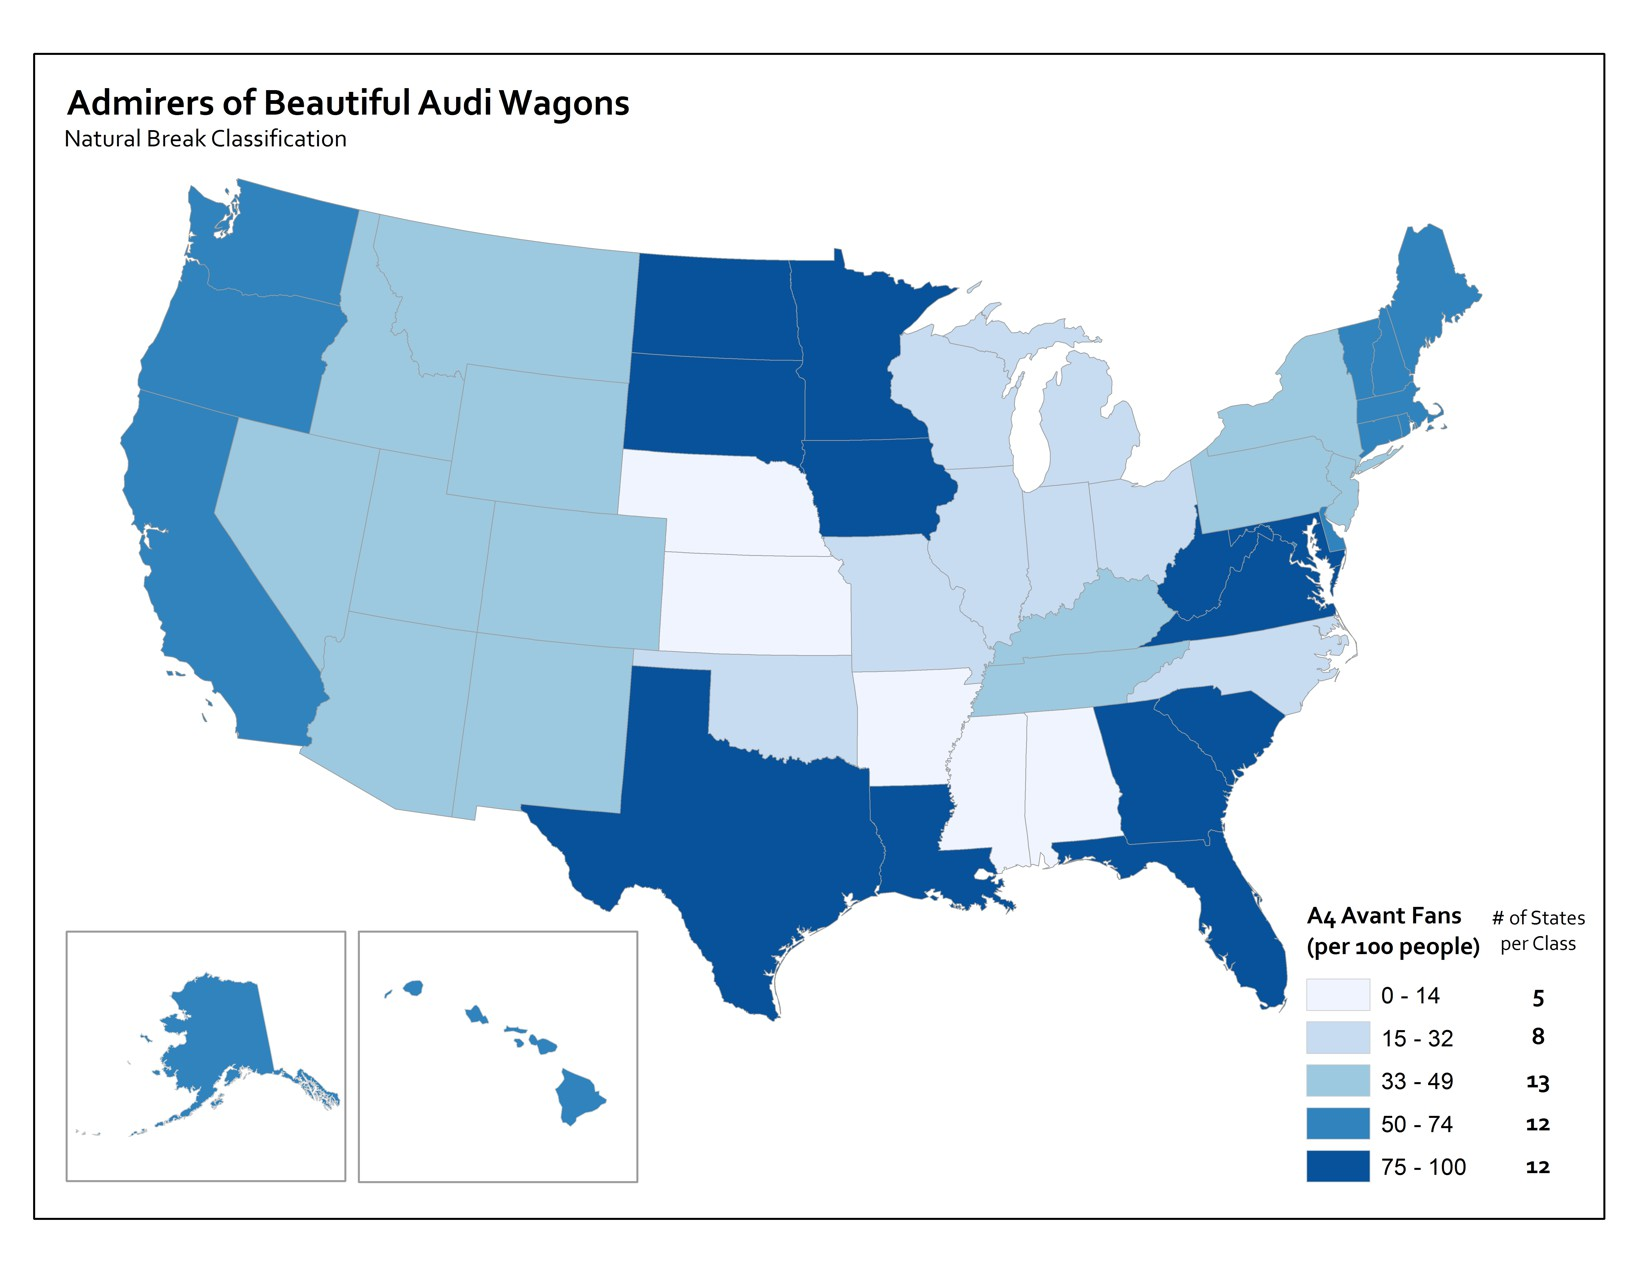 map using natural break classification to show percent of admirers of Audi wagons per state